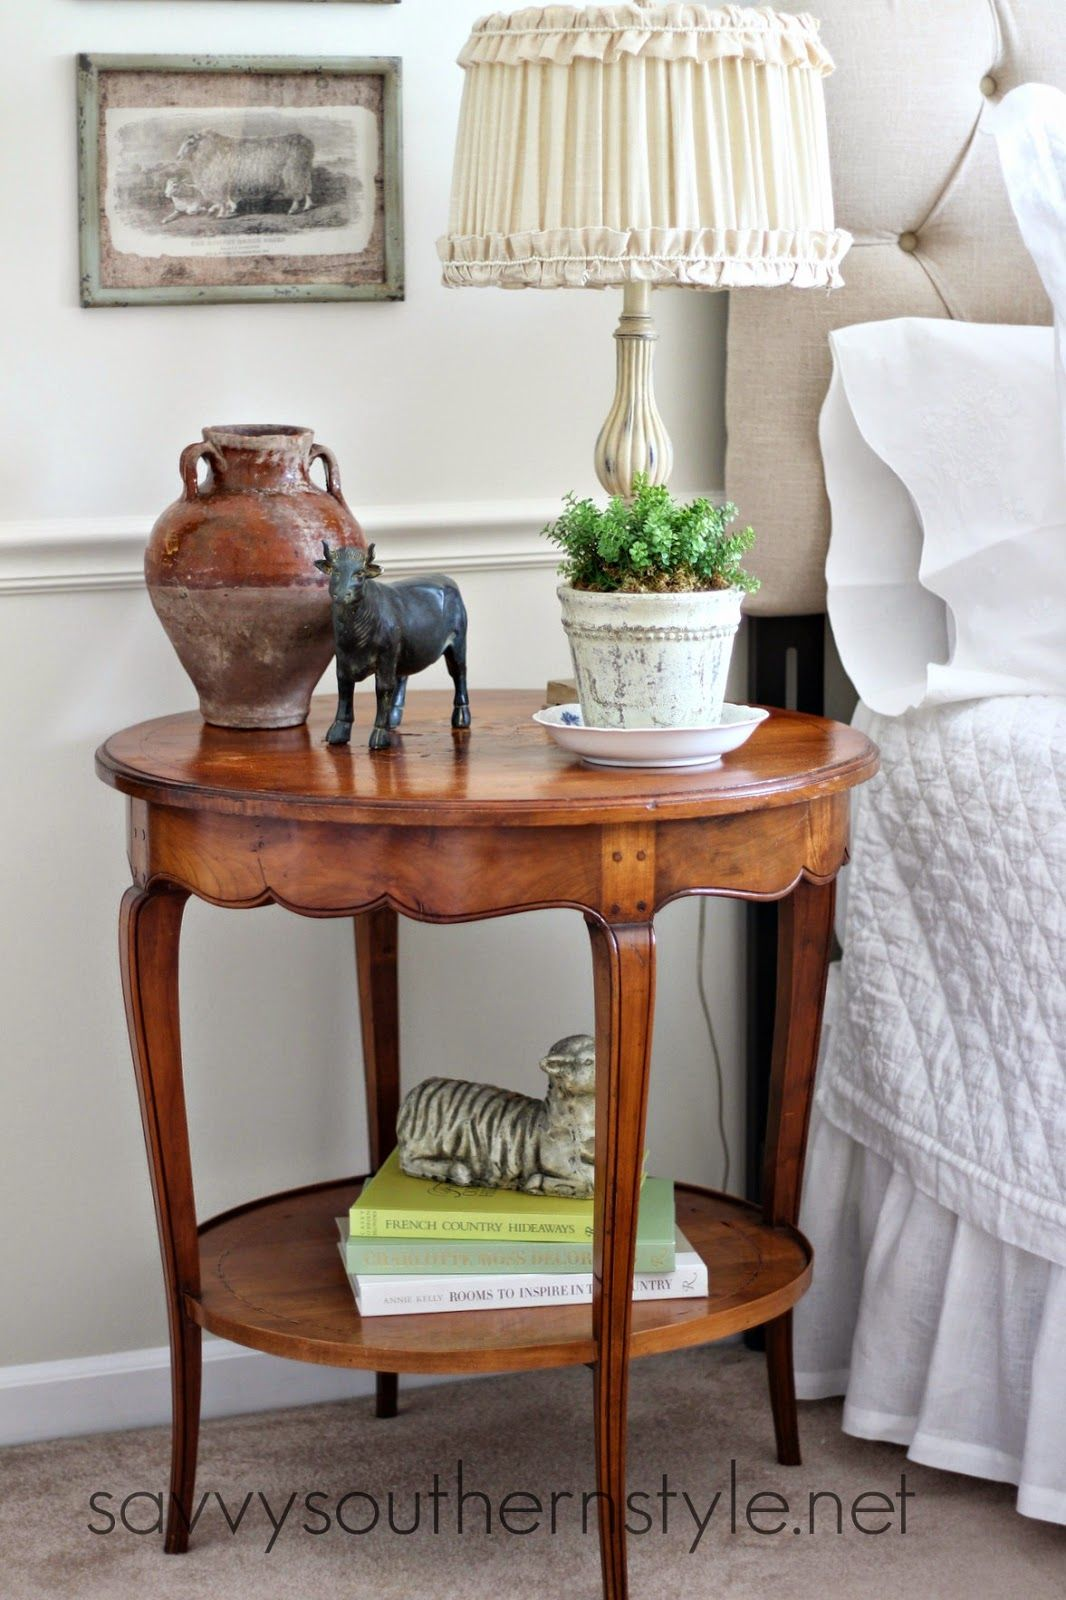 Savvy southern style french antique table in a guest room diy